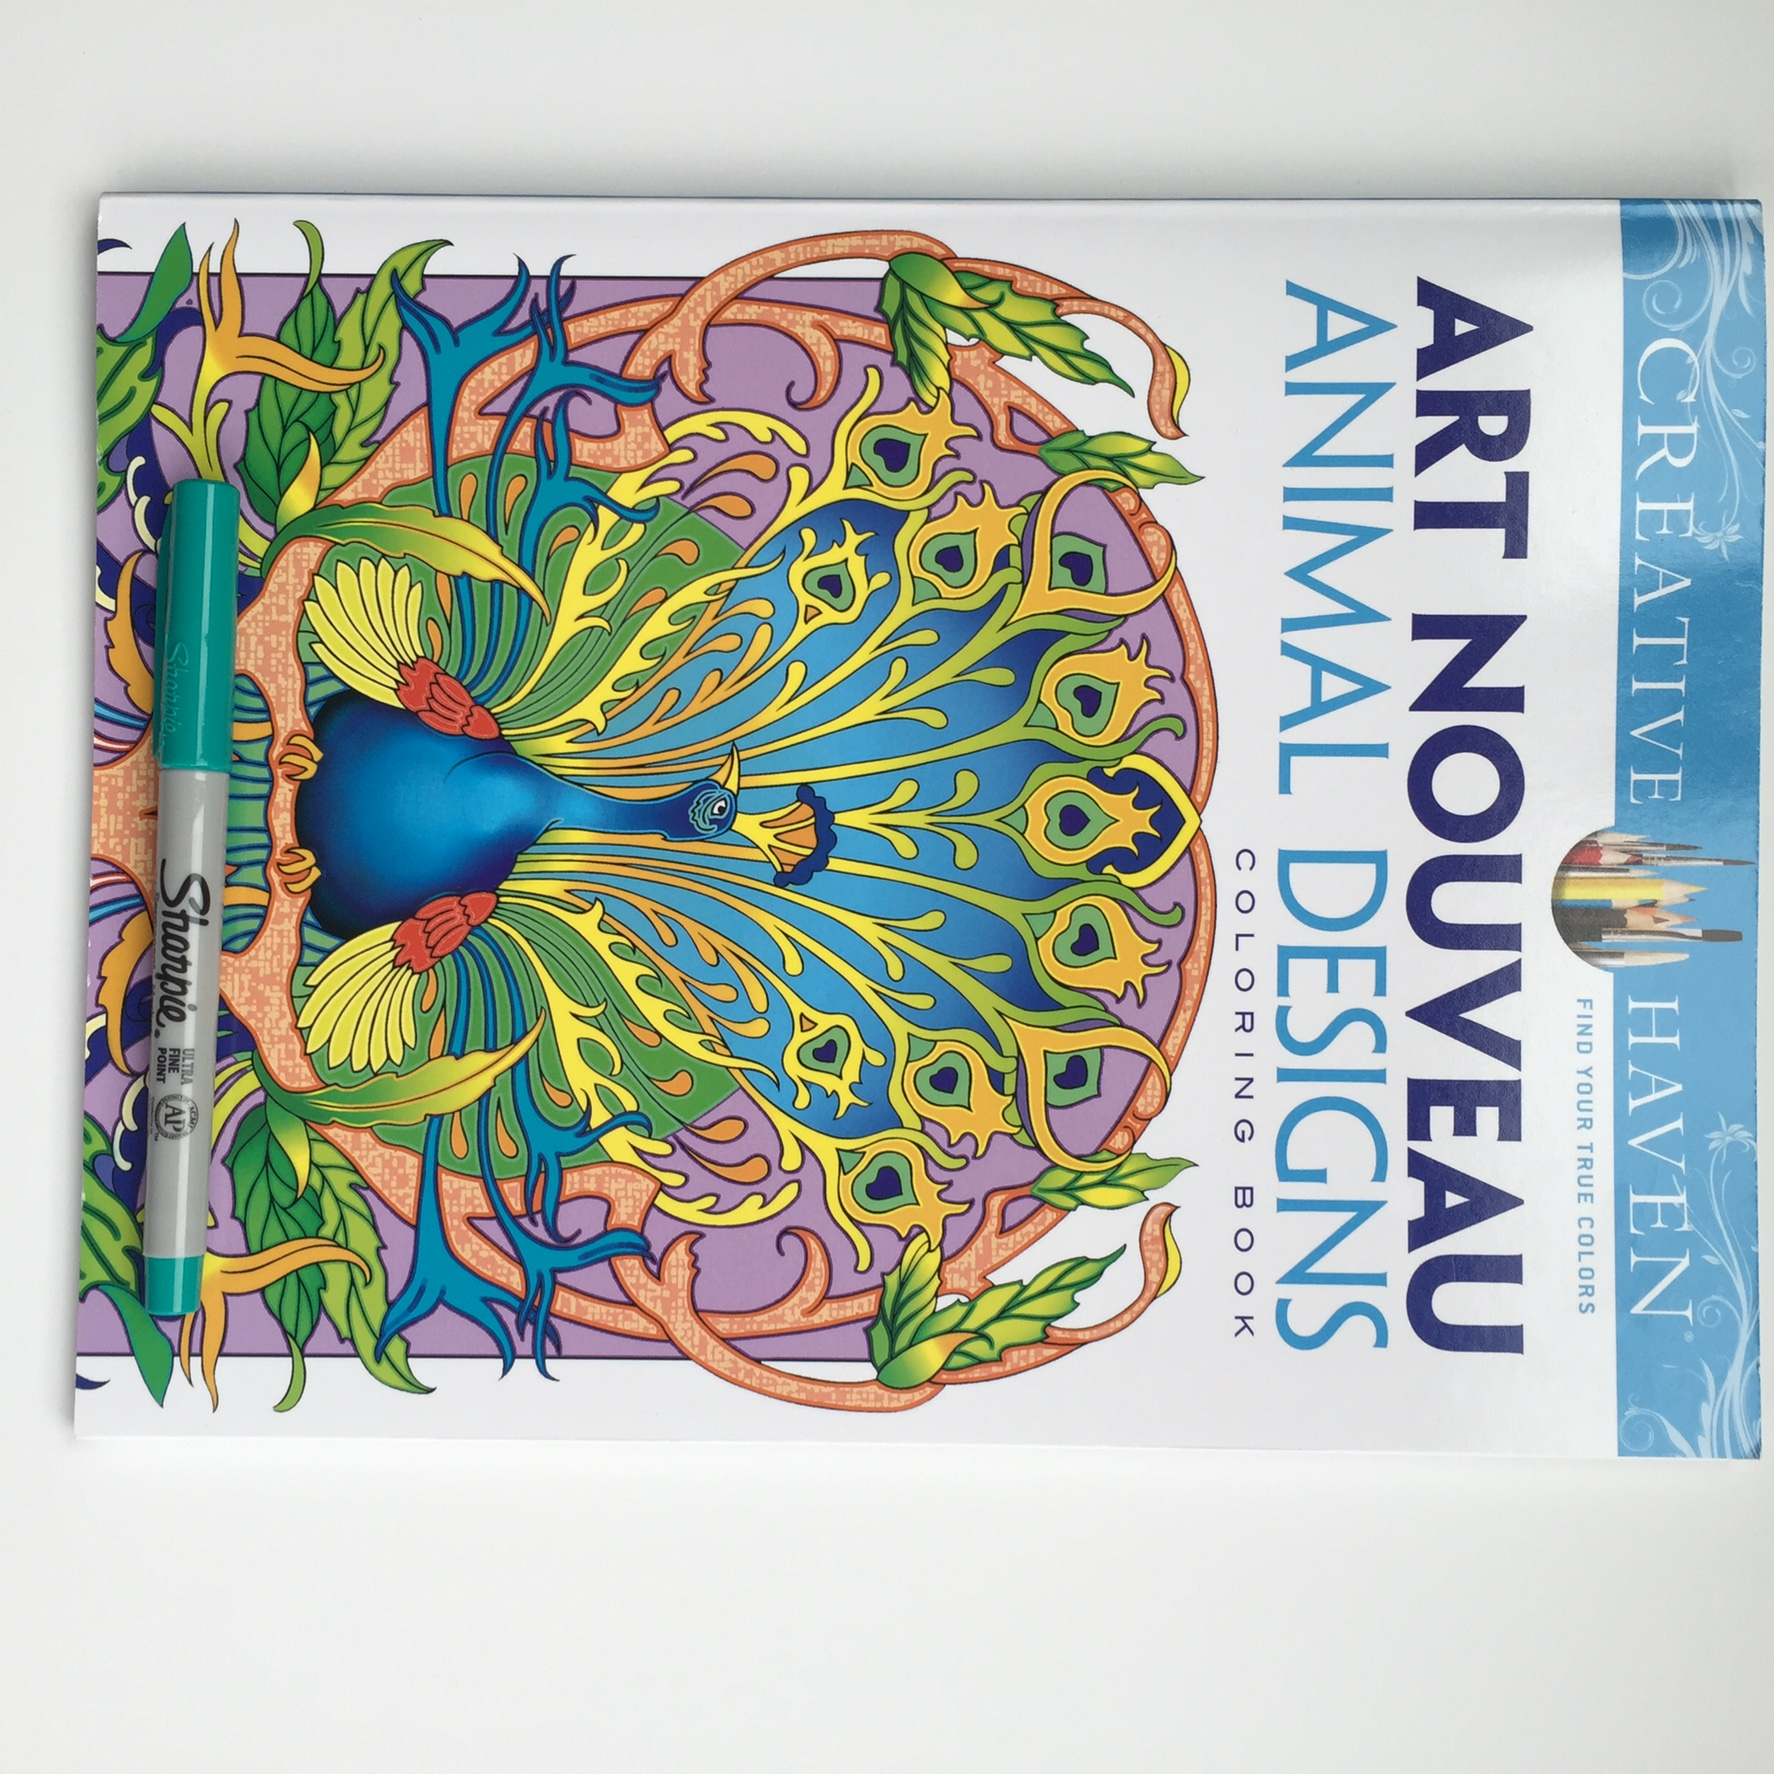 Coloring book color of art - Art Nouveau Animal Designs Coloring Book Published By Creative Haven This Book Is Composed Of Images Of Various Animals Peacocks Monkeys Chickens